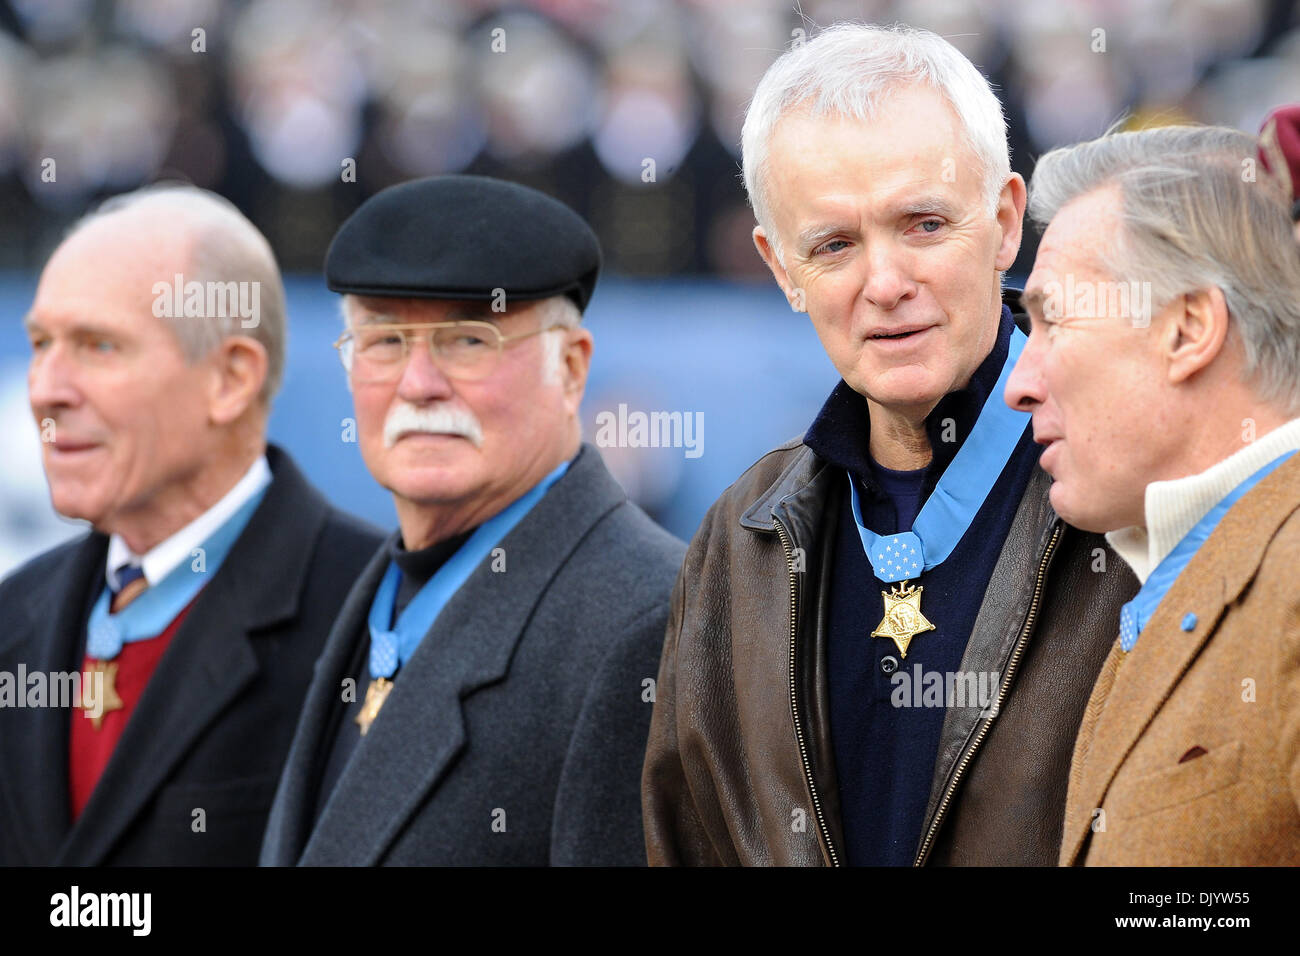 Dec. 11, 2010 - Philadelphia, Pennsylvania, United States of America - Medal of Honor recipients participate in the coin flip during Saturday afternoon's game between the Army and the Navy at Lincoln Financial Field in Philadelphia, PA. Navy leads Army 10-0 after the first quarter. (Credit Image: © Russell Tracy/Southcreek Global/ZUMAPRESS.com) - Stock Image